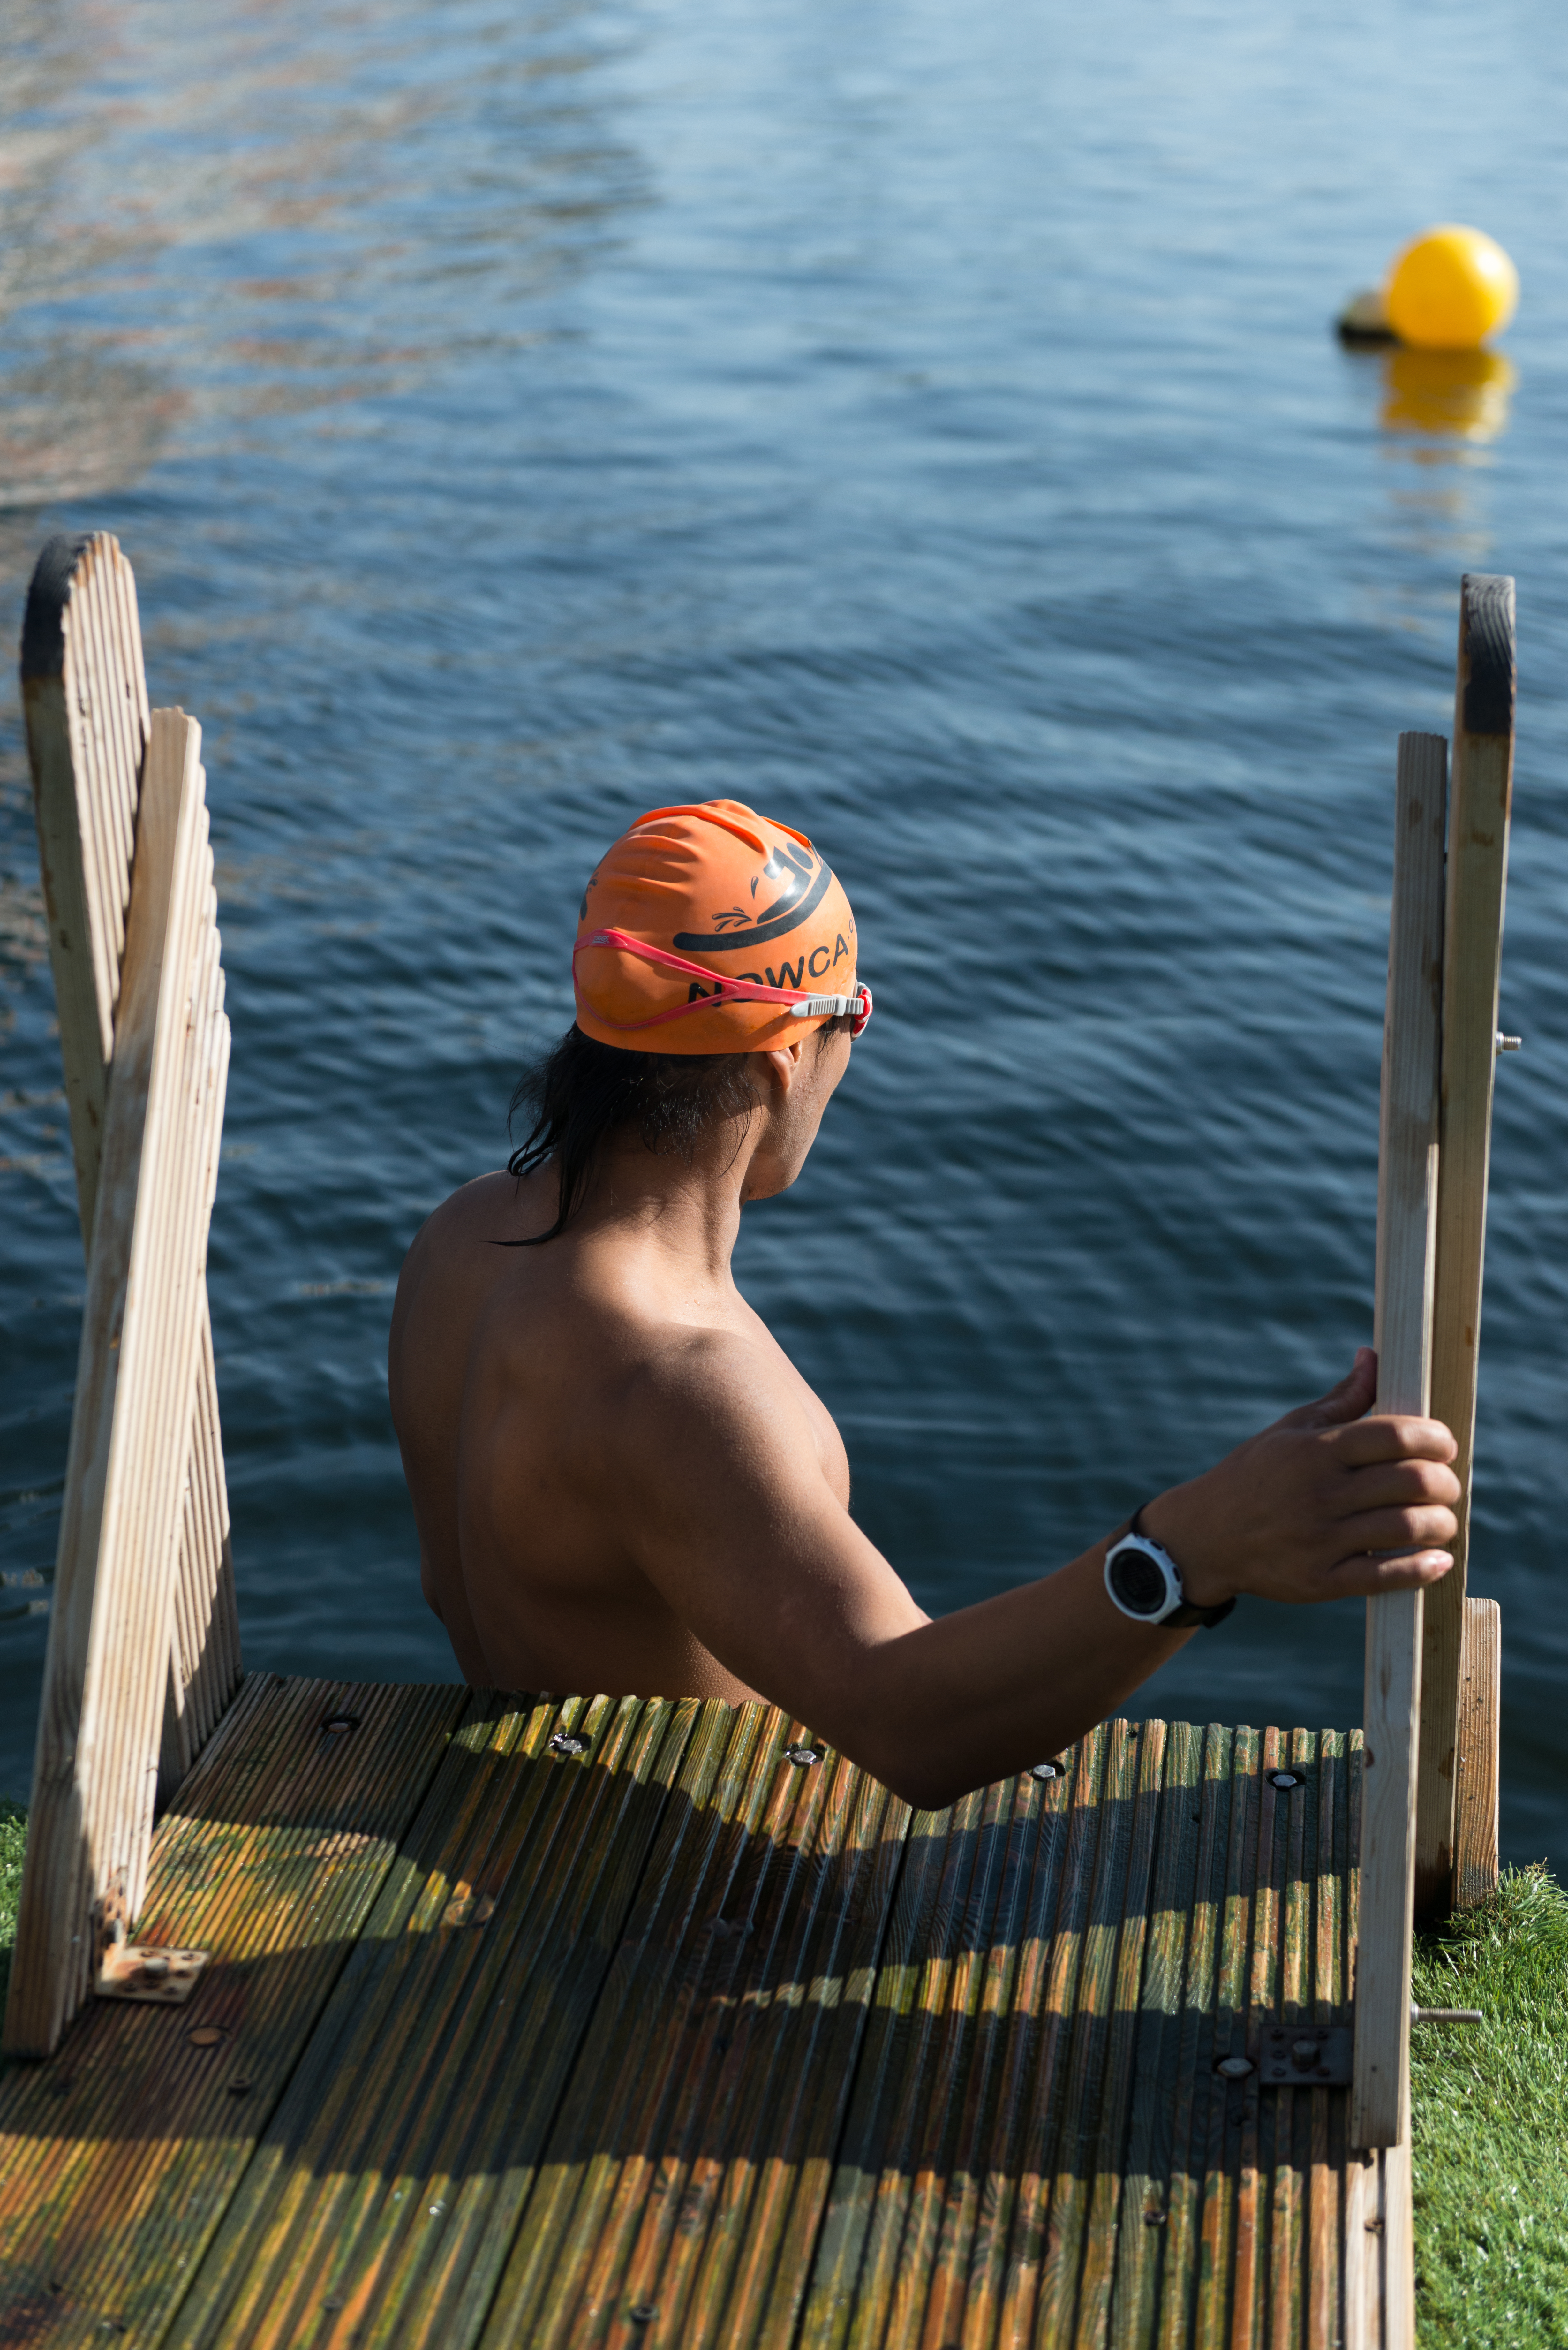 A swimmer in an orange cap about to set out from the dock edge